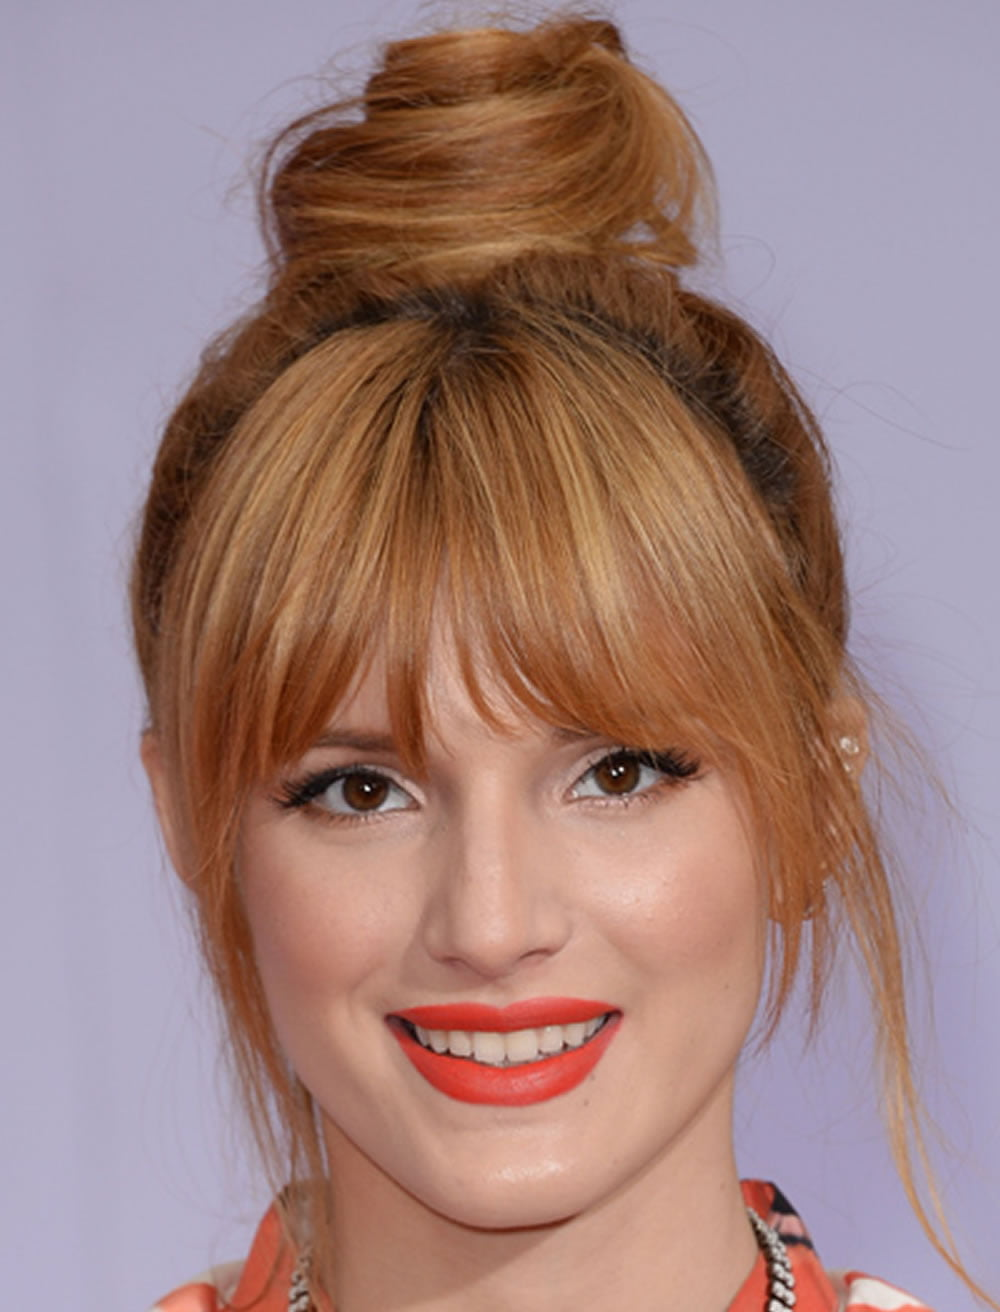 Updo Bun Hairstyles For Women With Round Faces Hairstyles